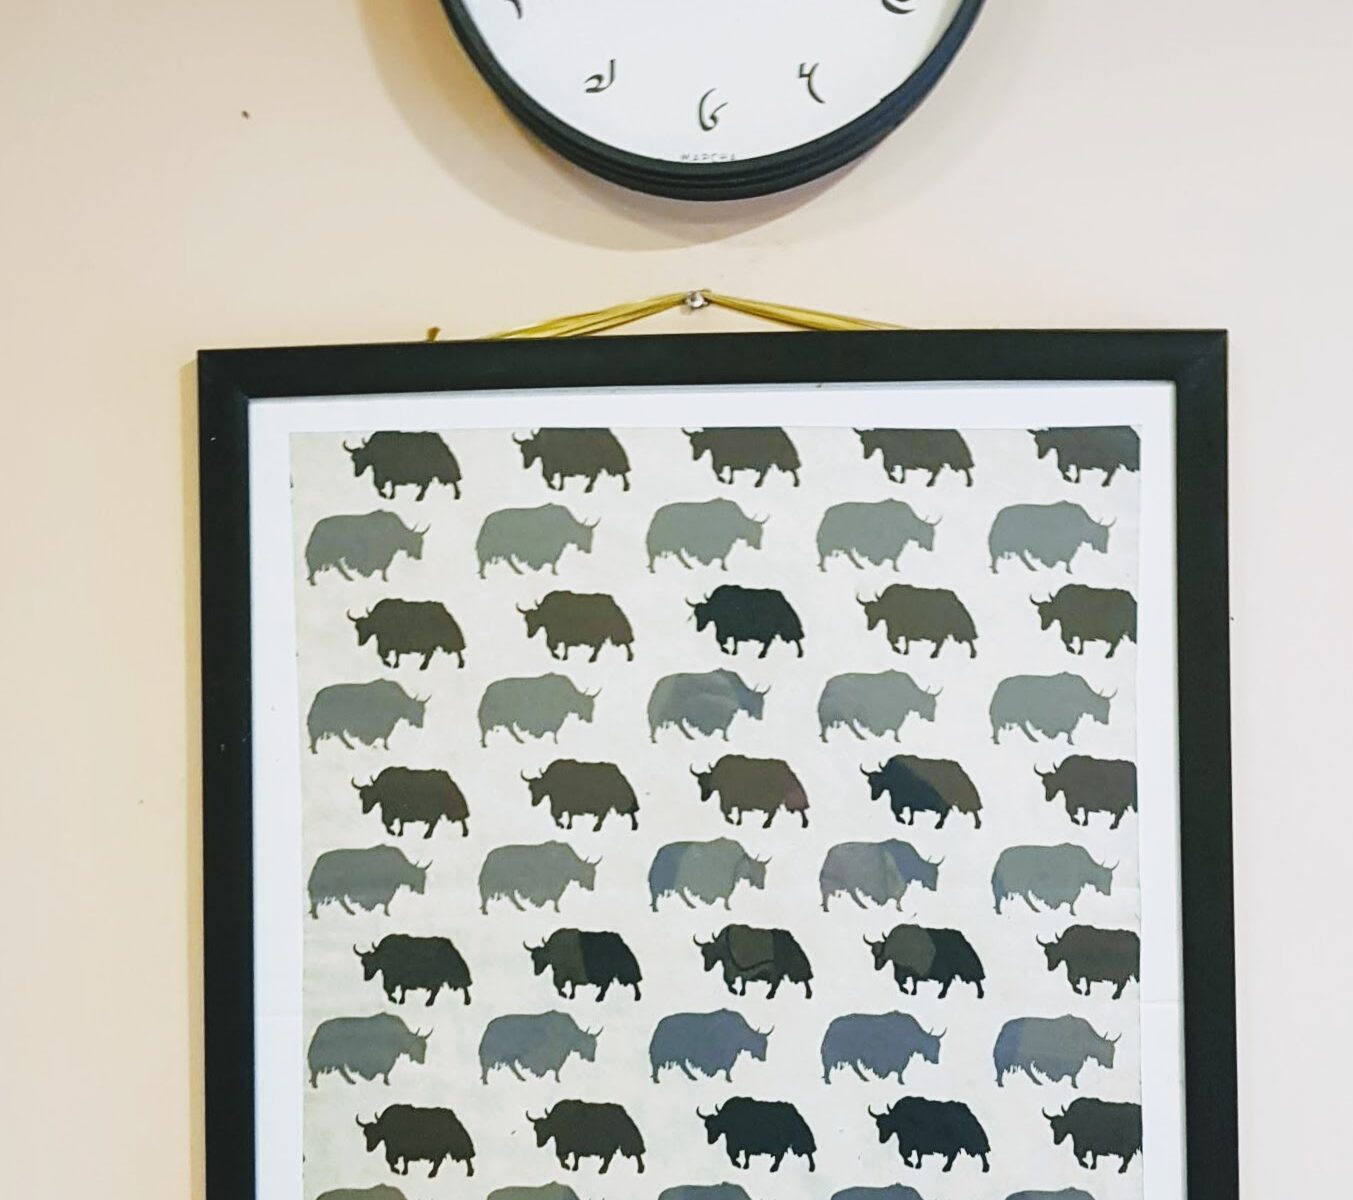 Clock with Tibetan Numerals over a black-and-white poster of Yaks going forwards and backwards.